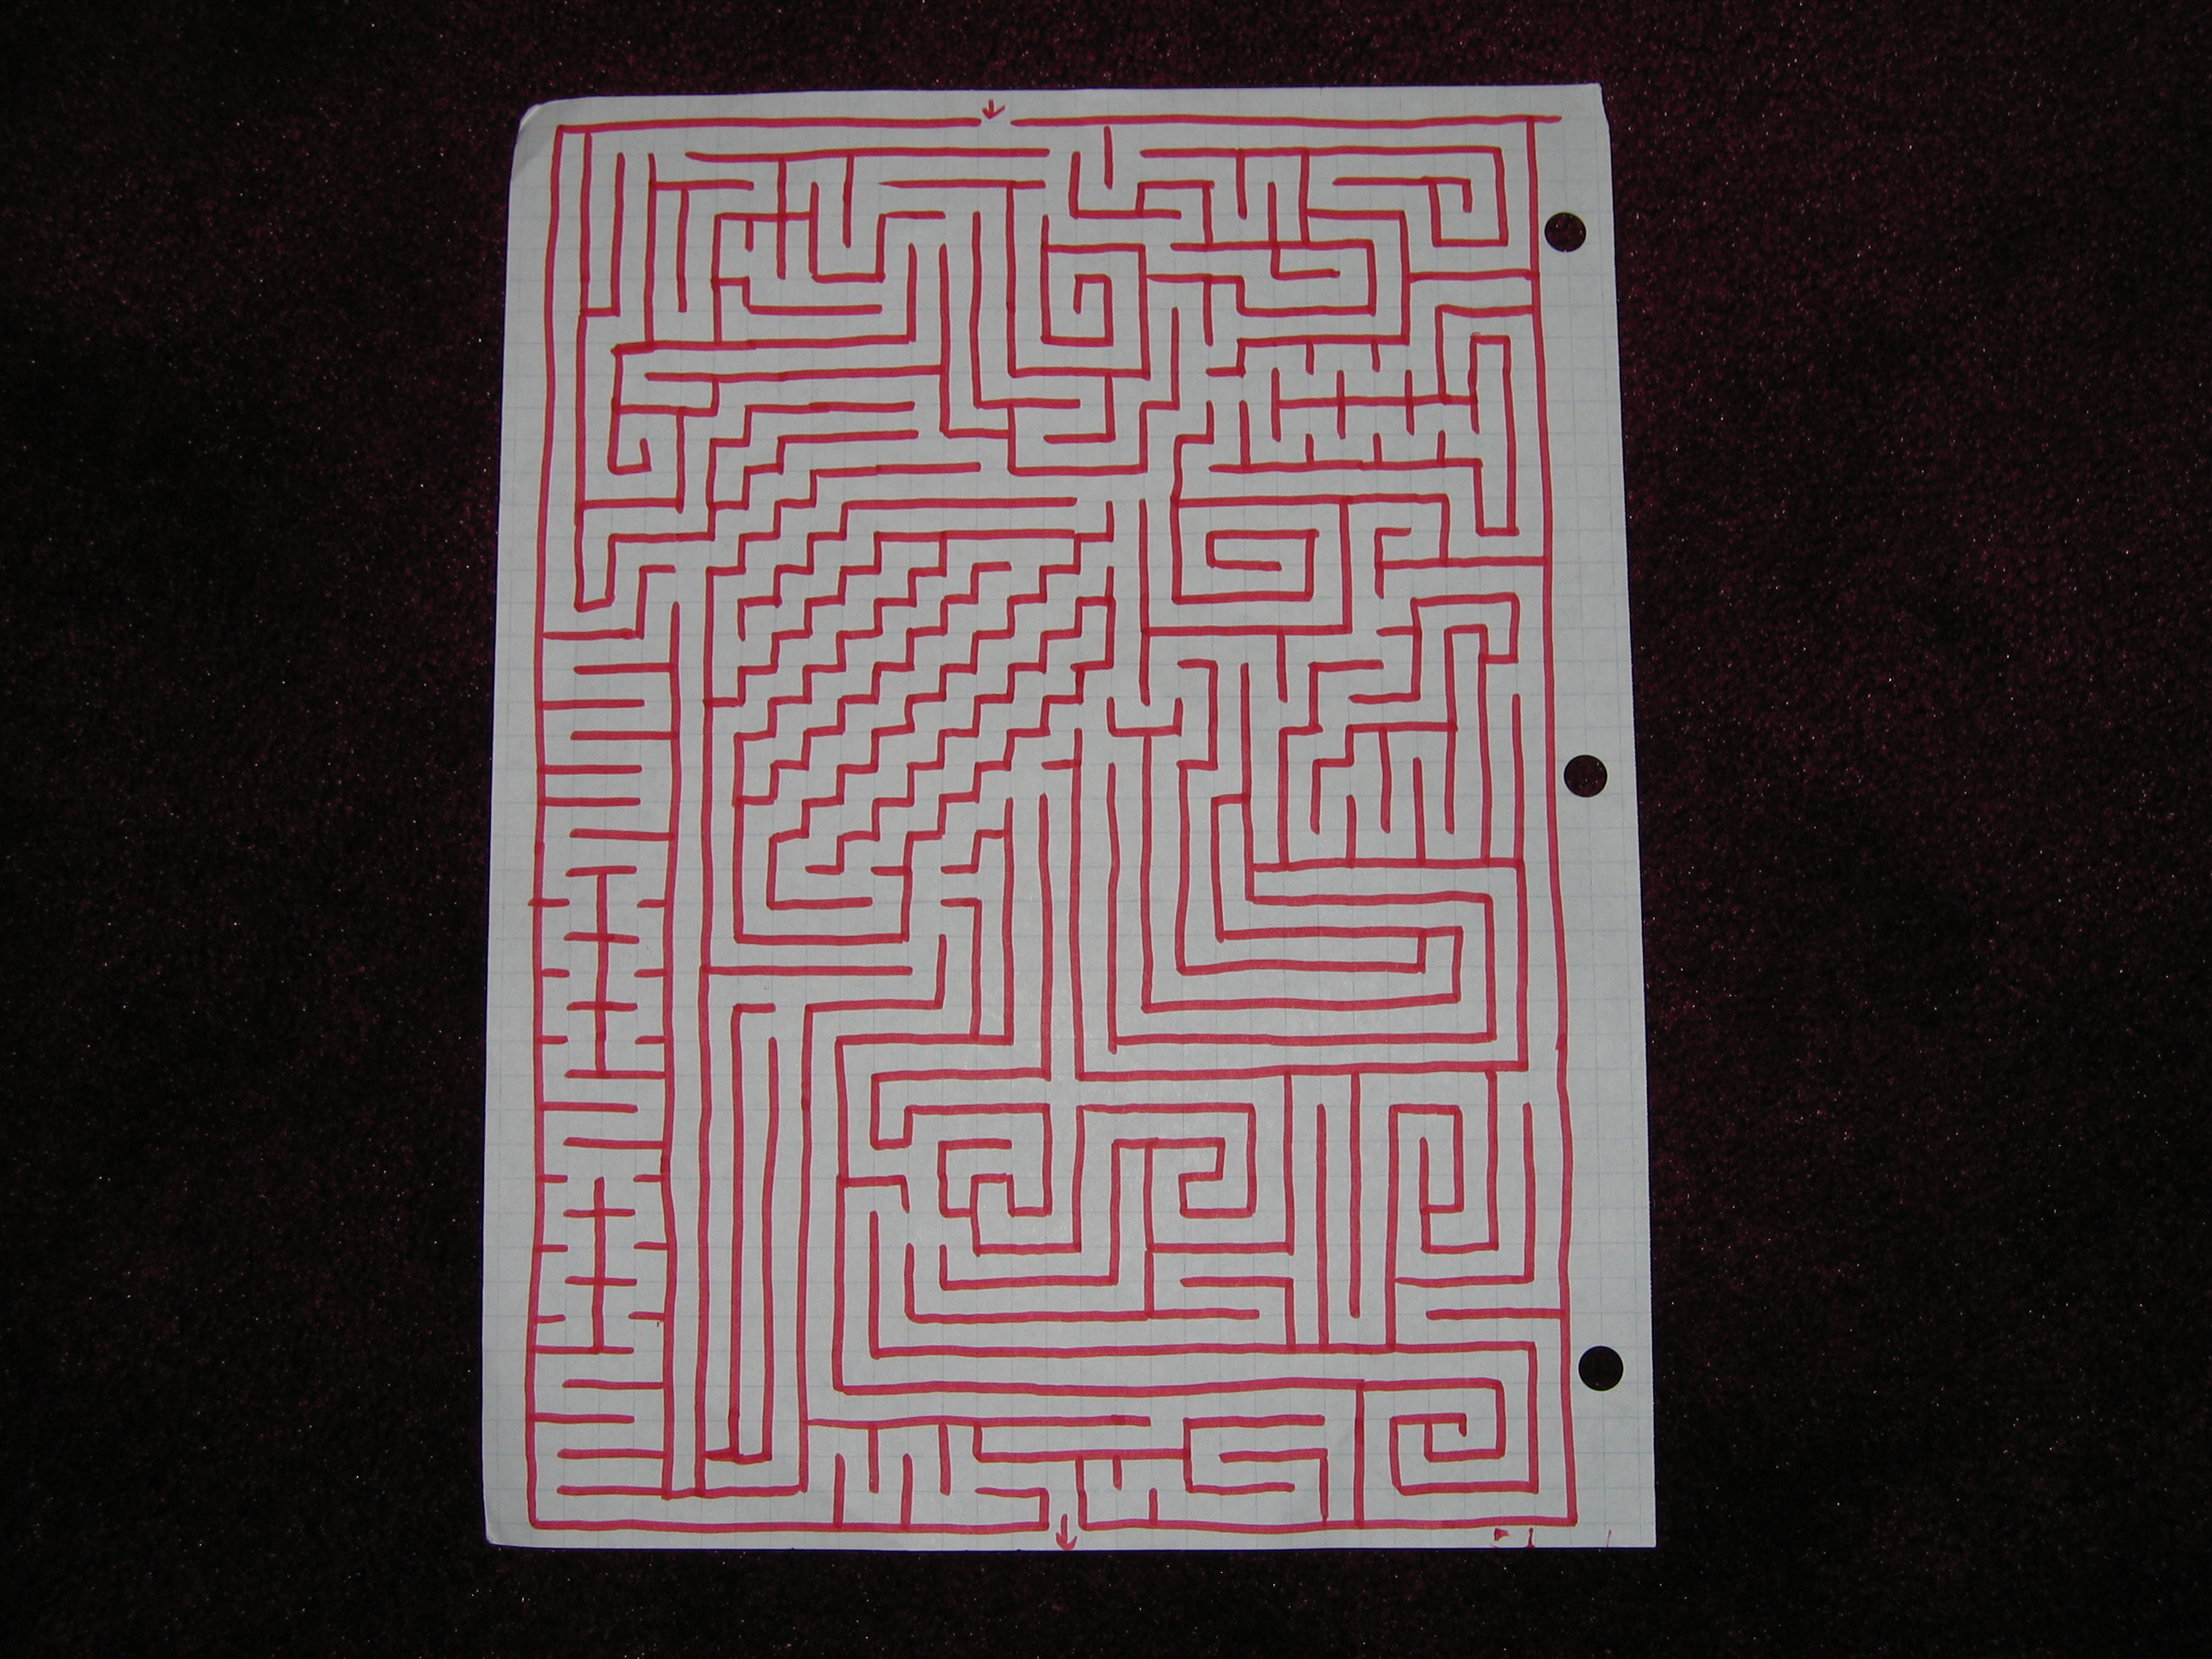 How to make mazes